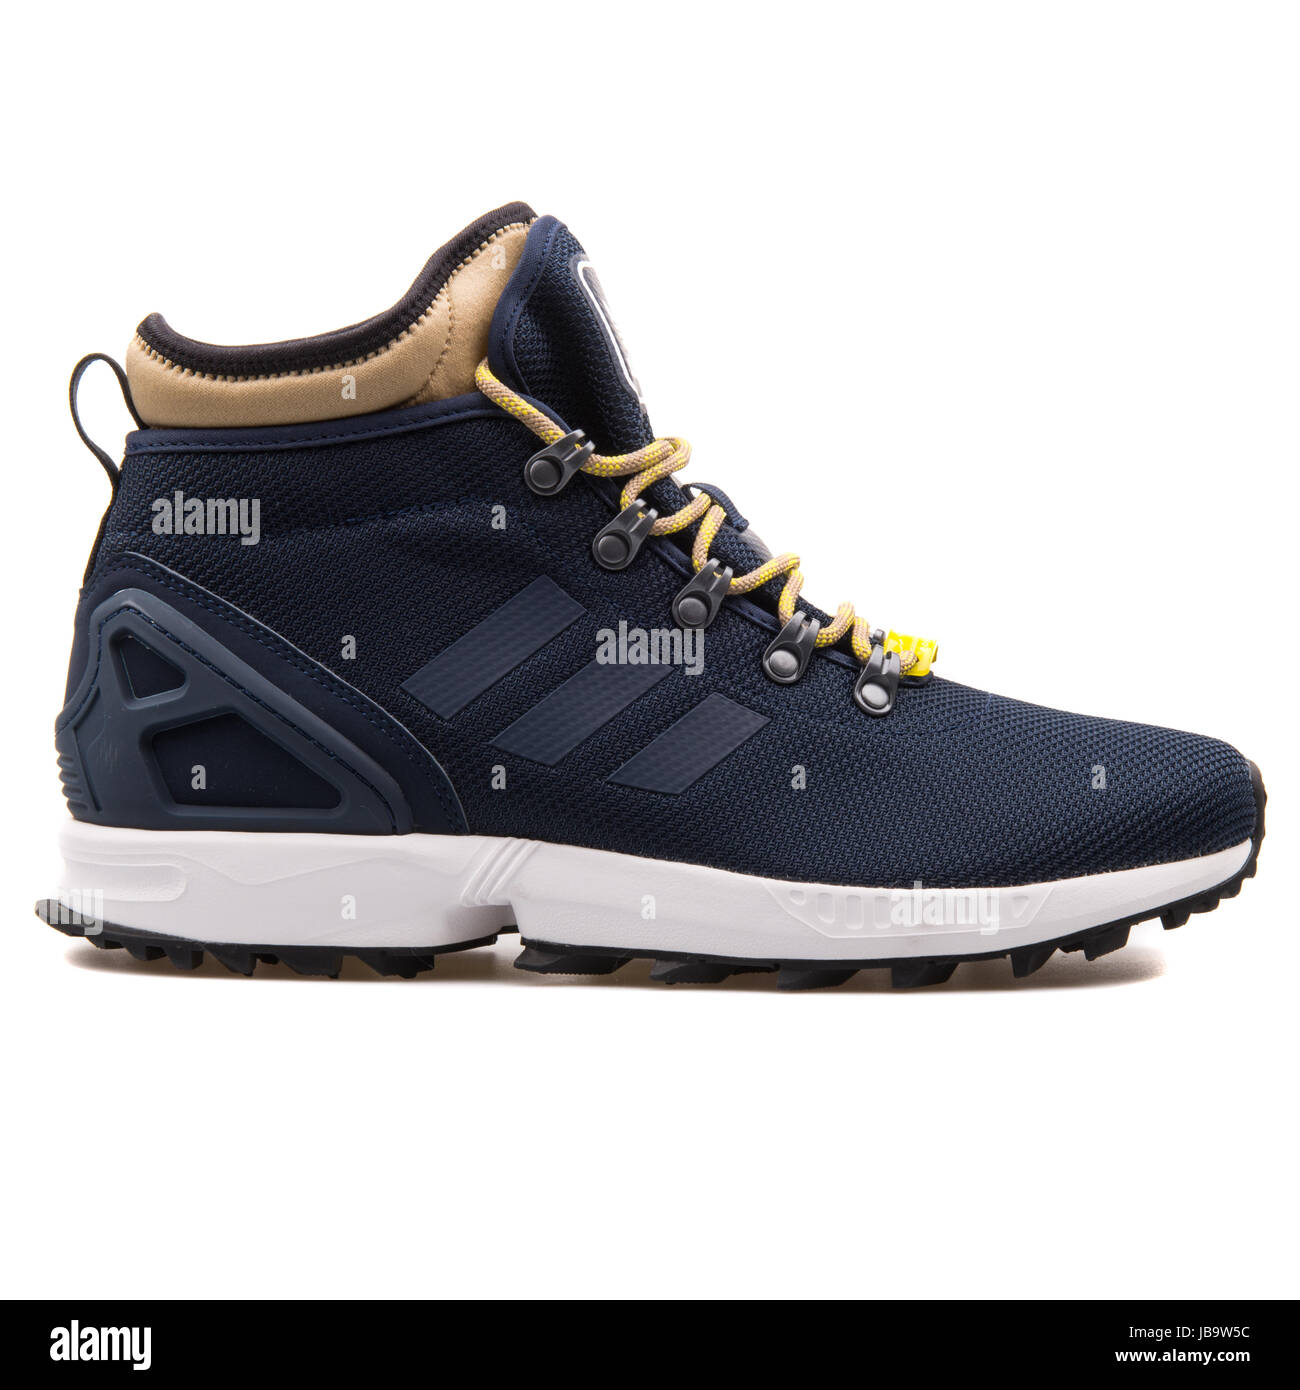 official photos 453ba 5c91f Adidas ZX Flux Winter Navy Blue Men's Sports Shoes - S82932 ...